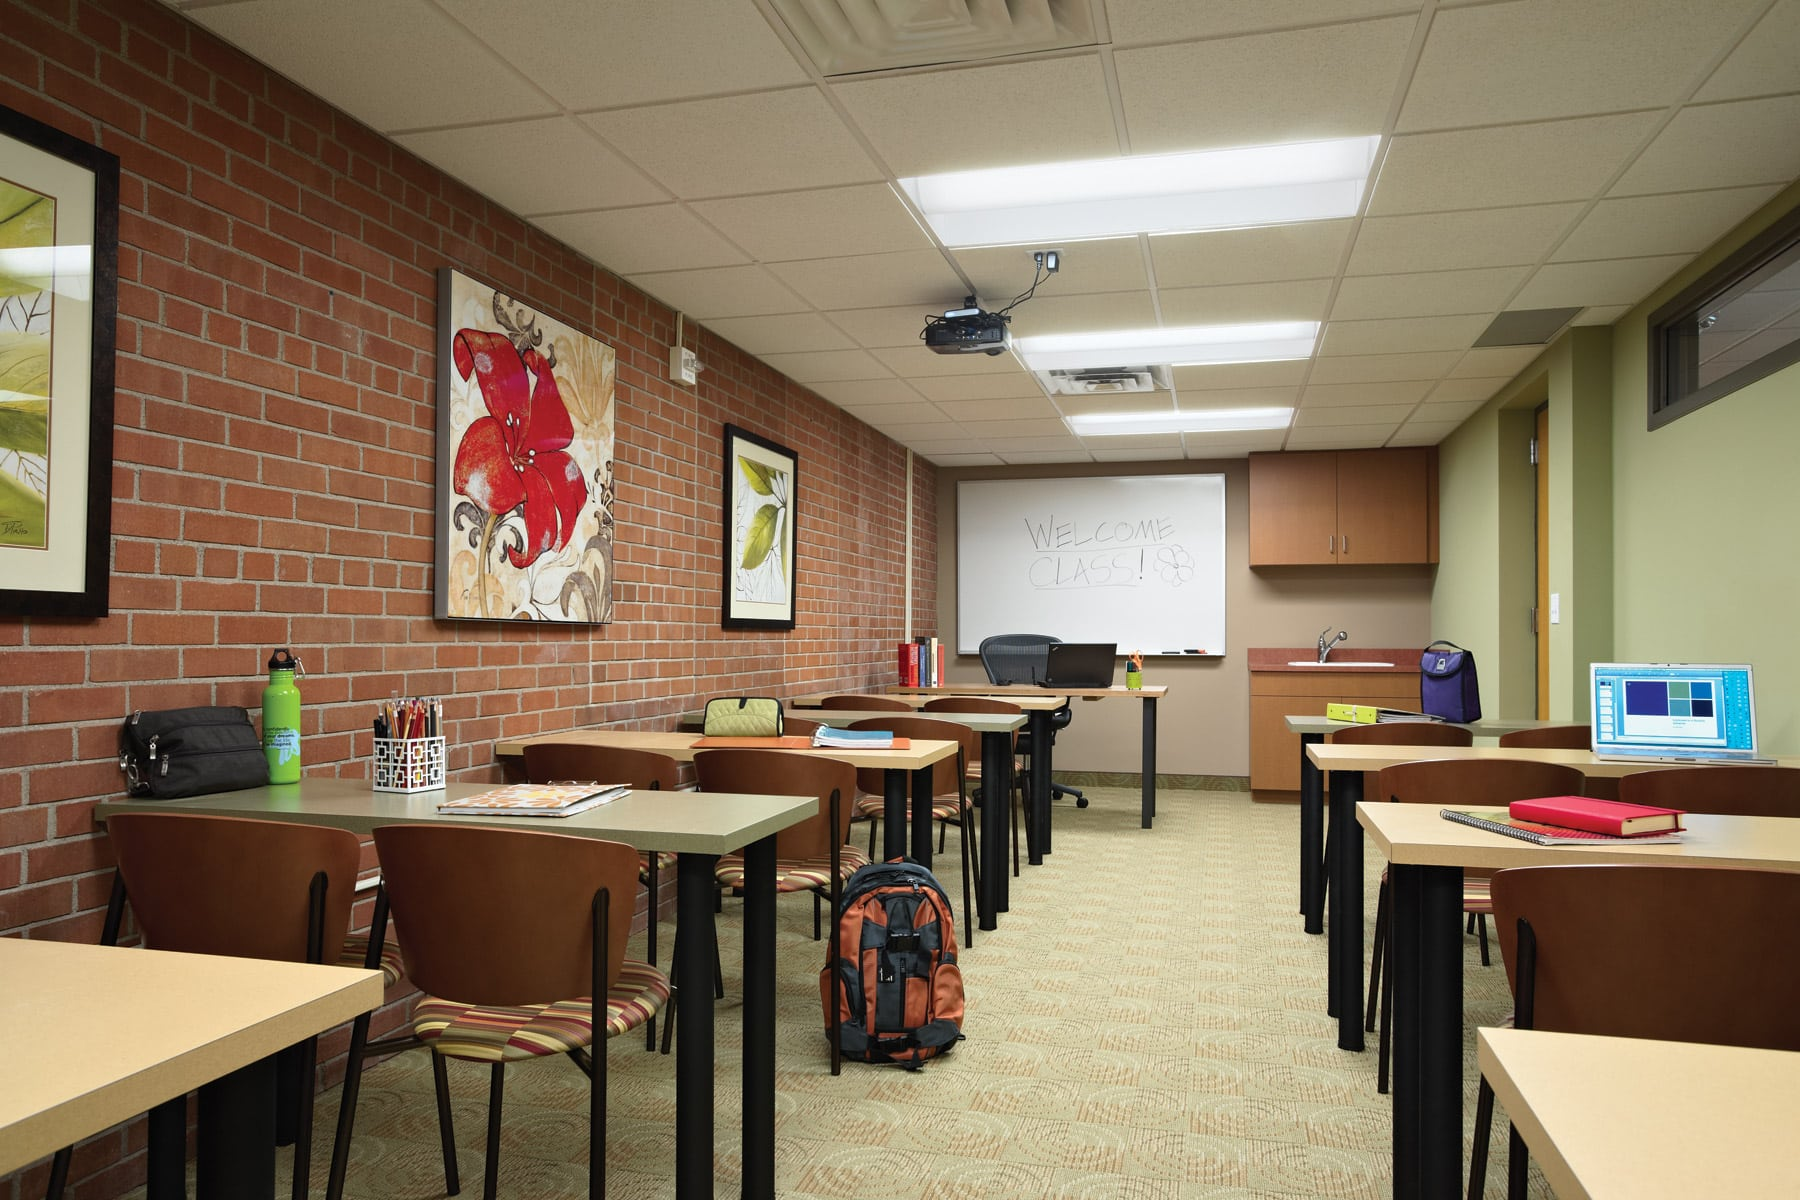 Eating-Disorder-Clinic-Classroom-Minneapolis-Interior-Designer.jpg